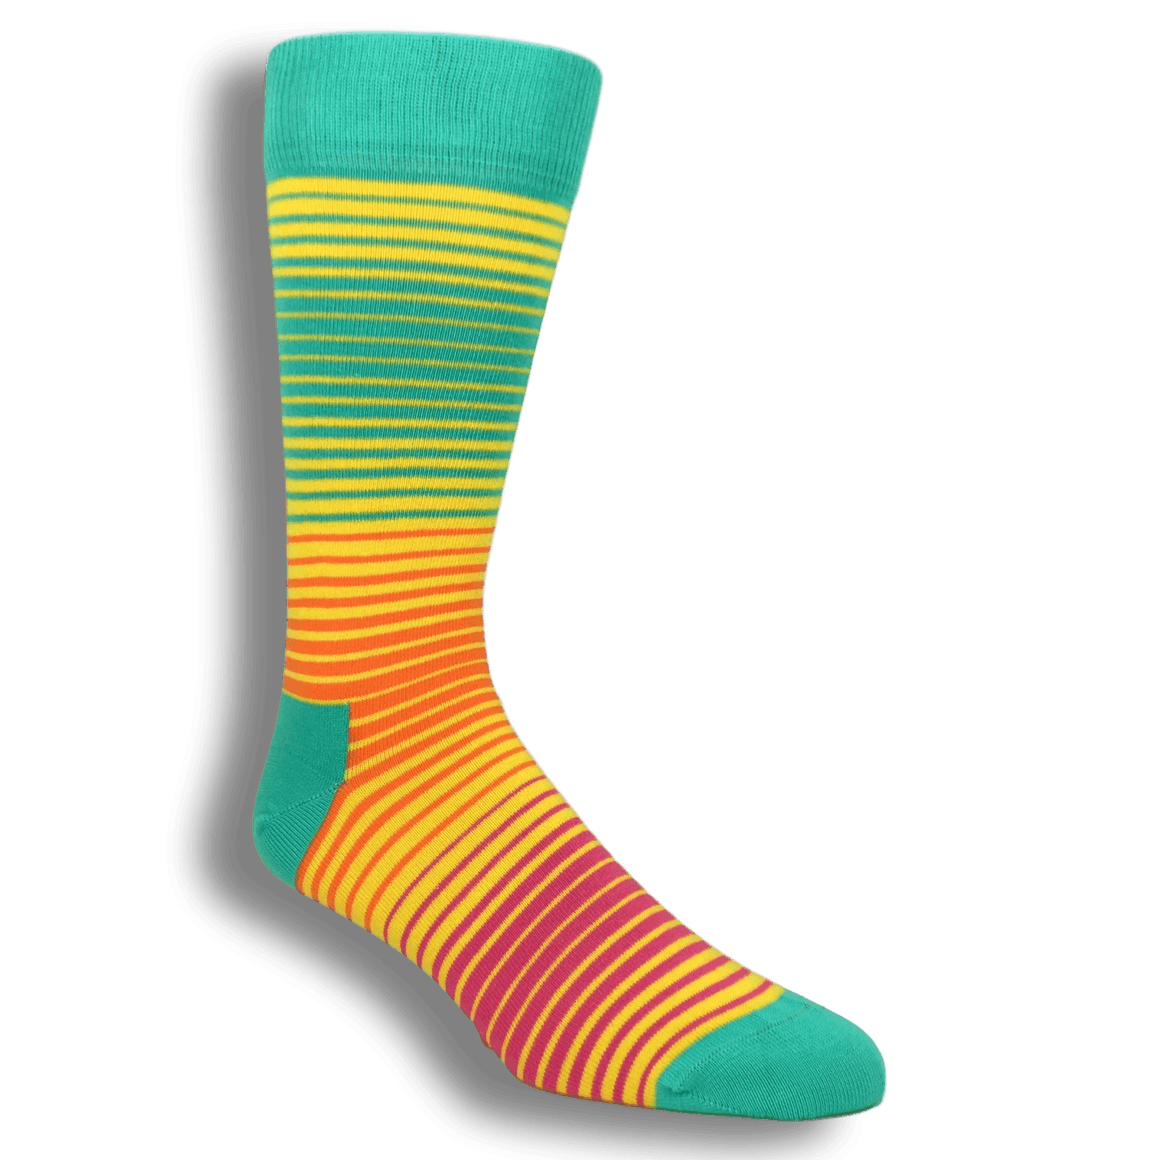 Socks - Neon Sunrise Socks By Happy Socks